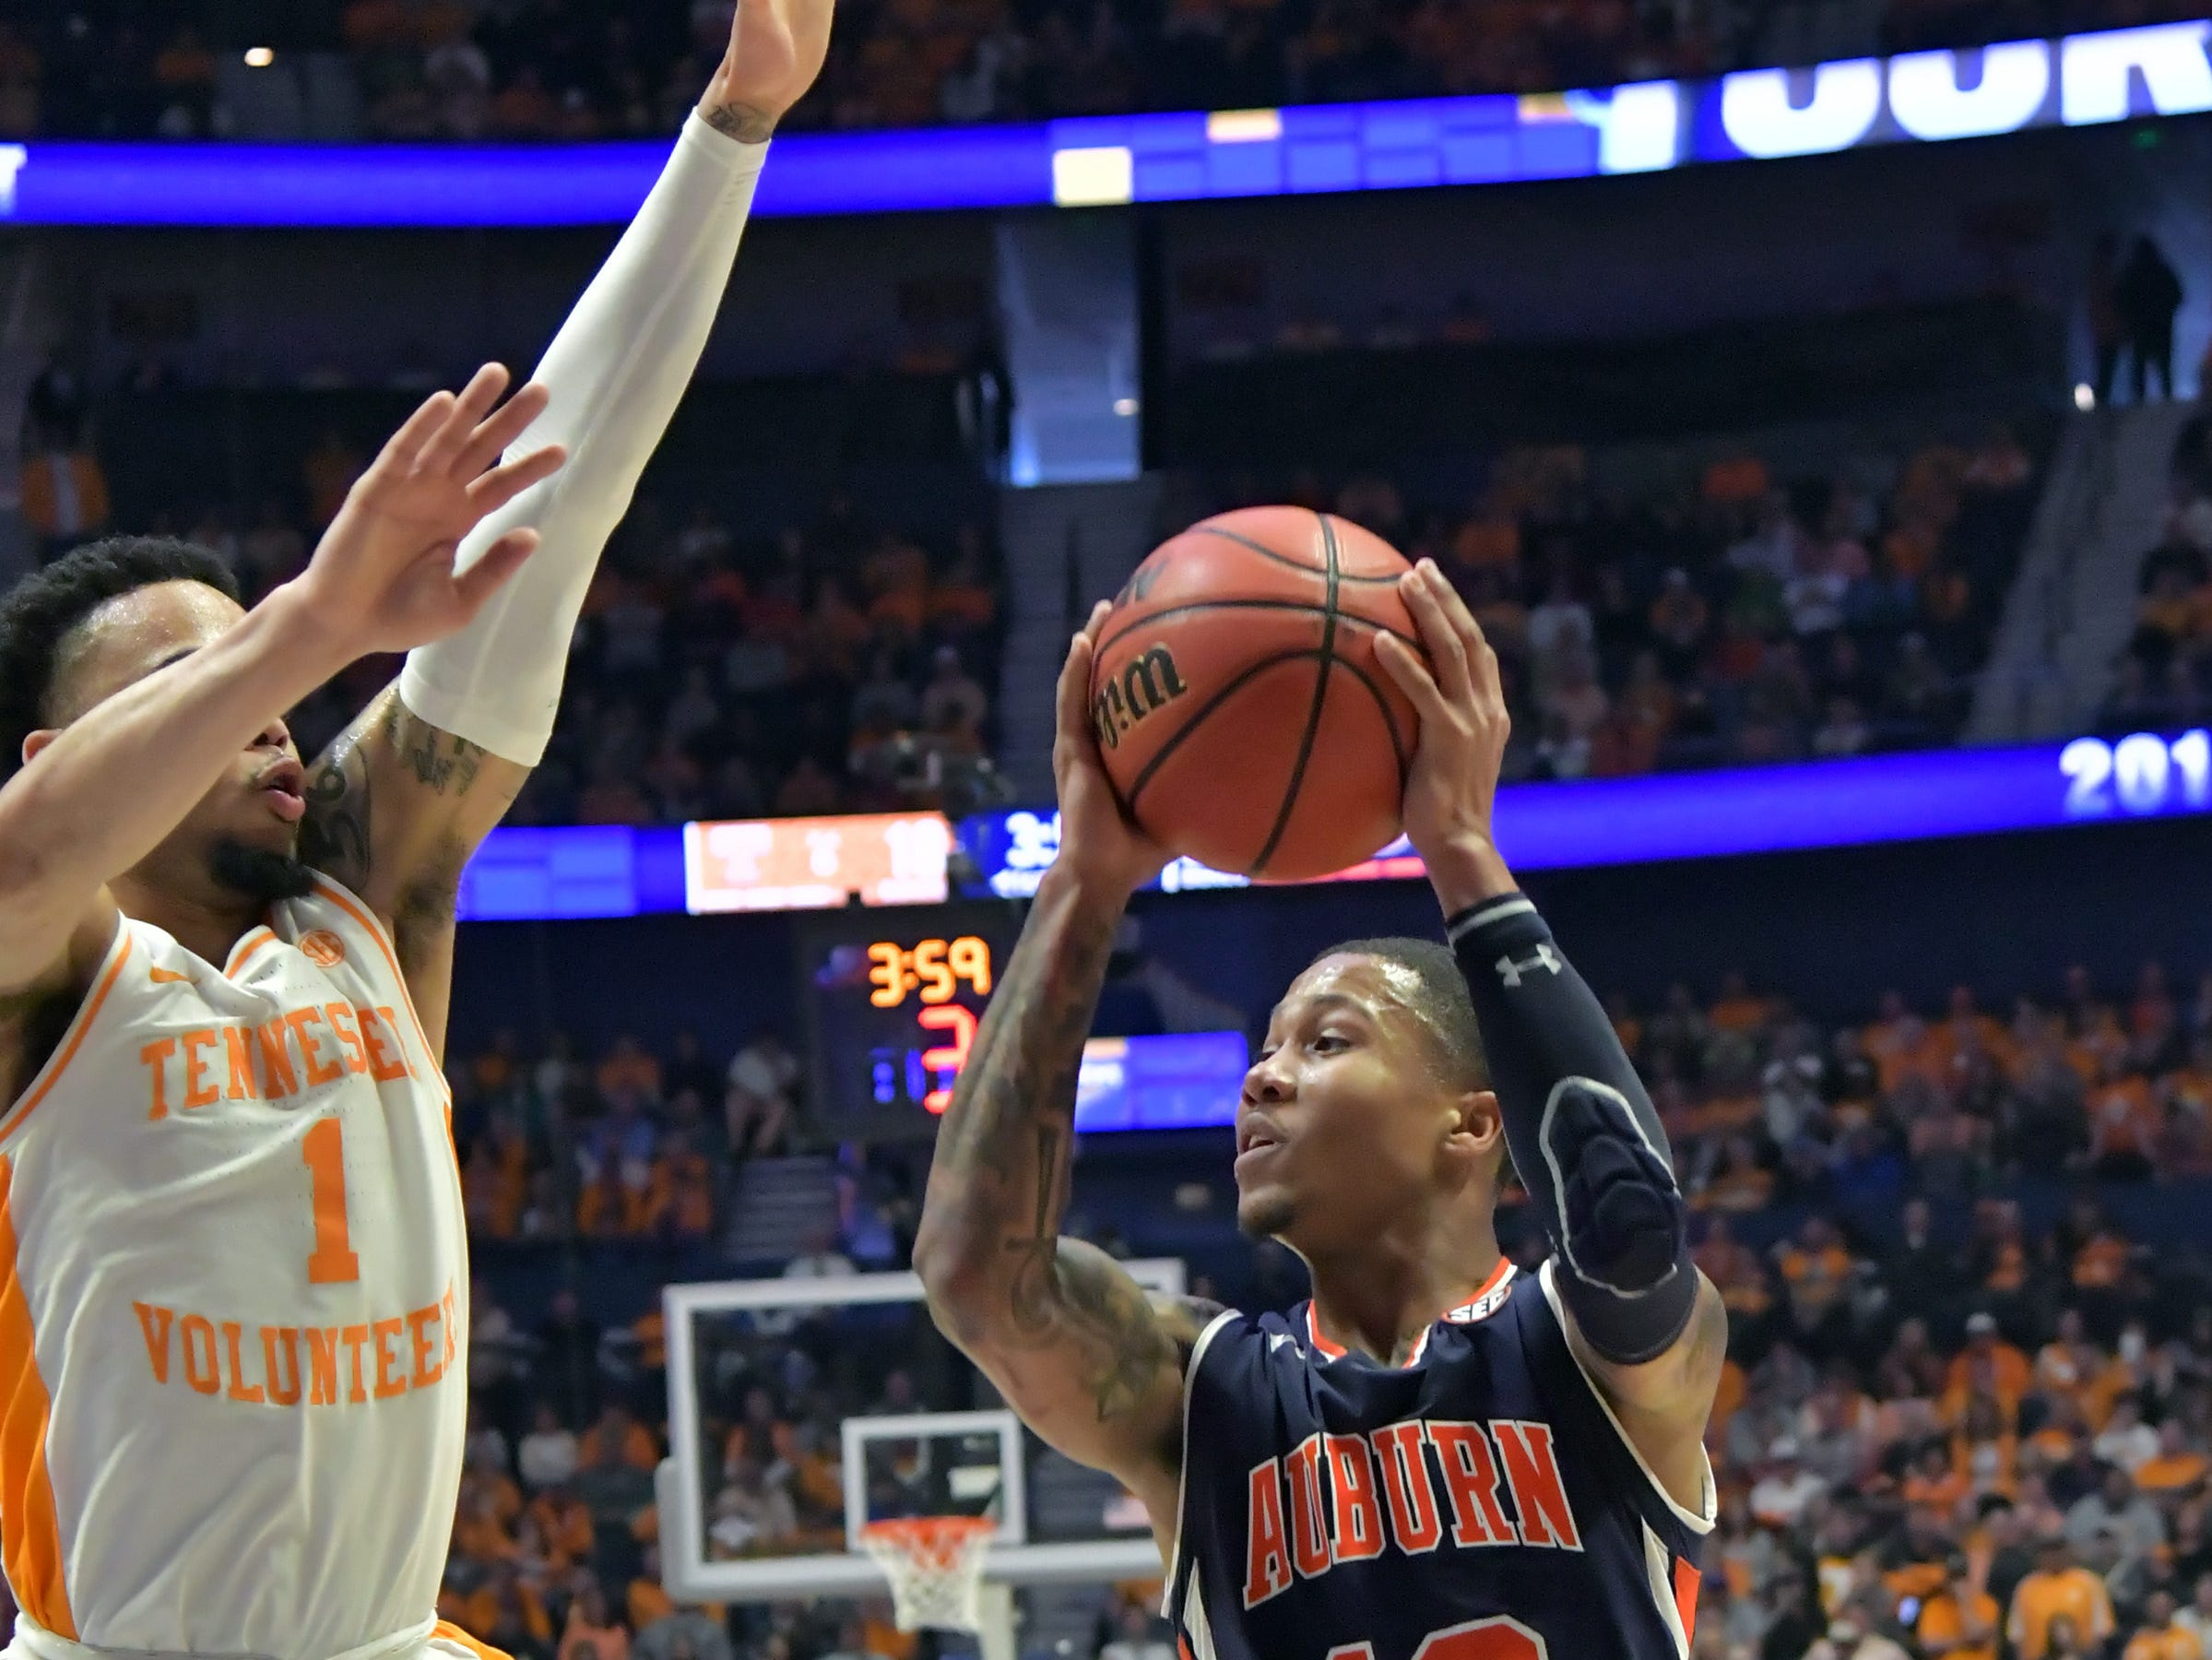 Mar 17, 2019; Nashville, TN, USA; Auburn Tigers guard J'Von McCormick (12) passes againstTennessee Volunteers guard Lamonte Turner (1) during the first half of the championship game in the SEC conference tournament at Bridgestone Arena. Mandatory Credit: Jim Brown-USA TODAY Sports